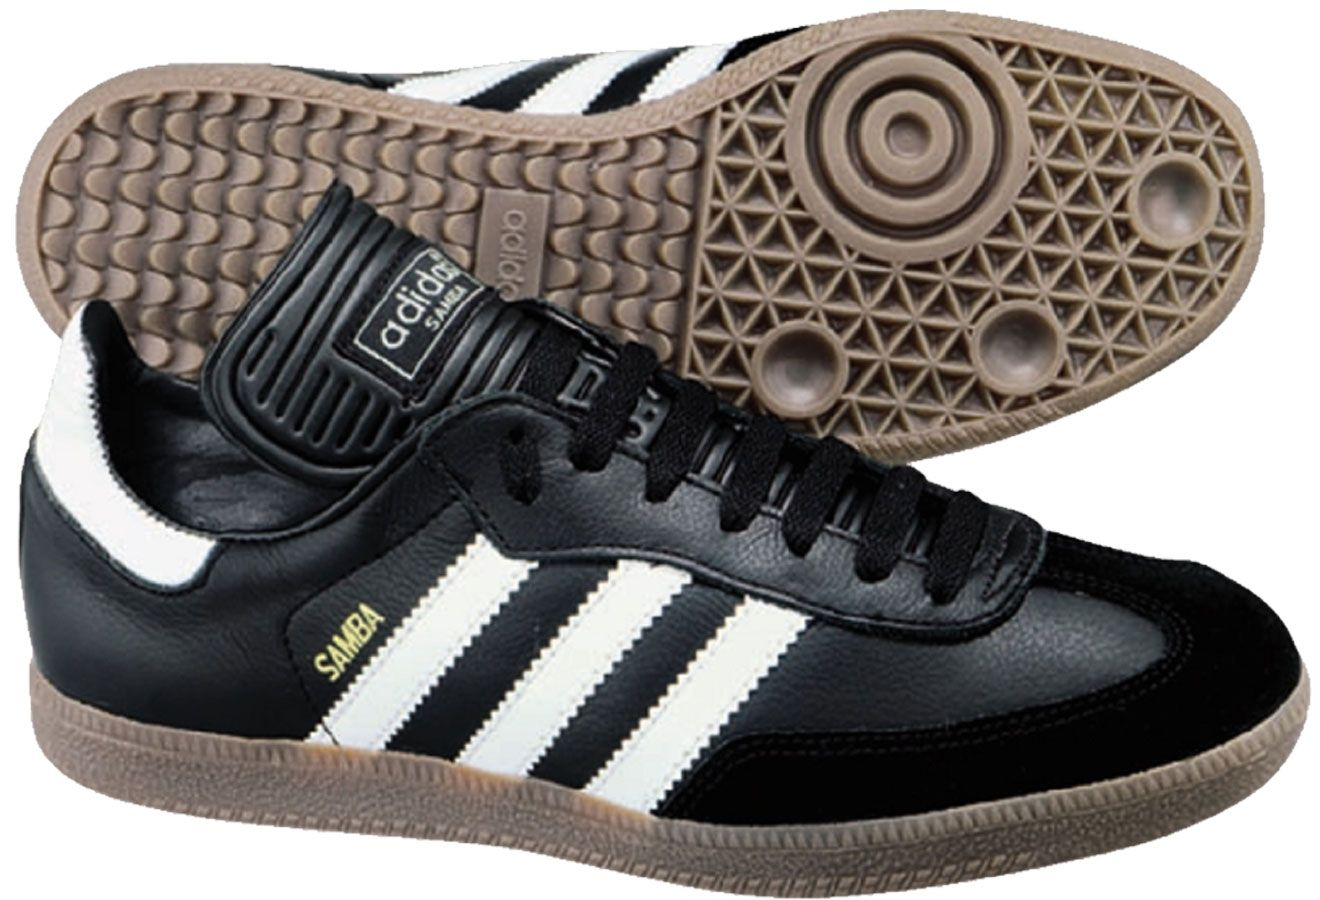 47c624325 official adidas samba og made in germany vintage white 5 7d612 5b038; new  zealand adidas mens samba classic indoor soccer shoe 0d9a9 ac43d